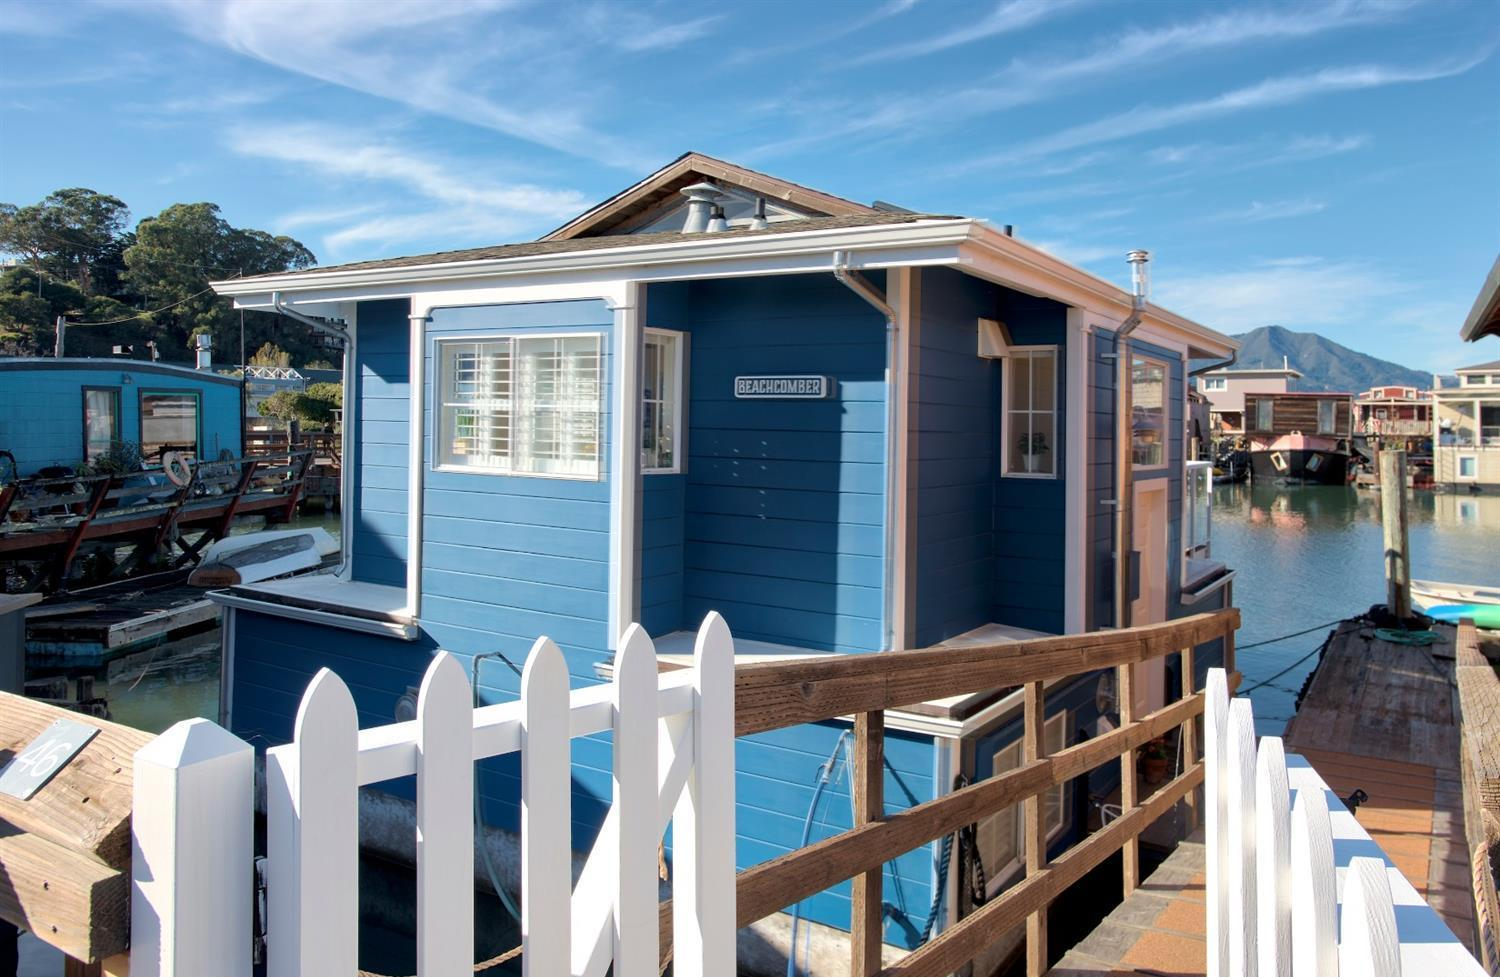 This Sausalito houseboat is downright adorable